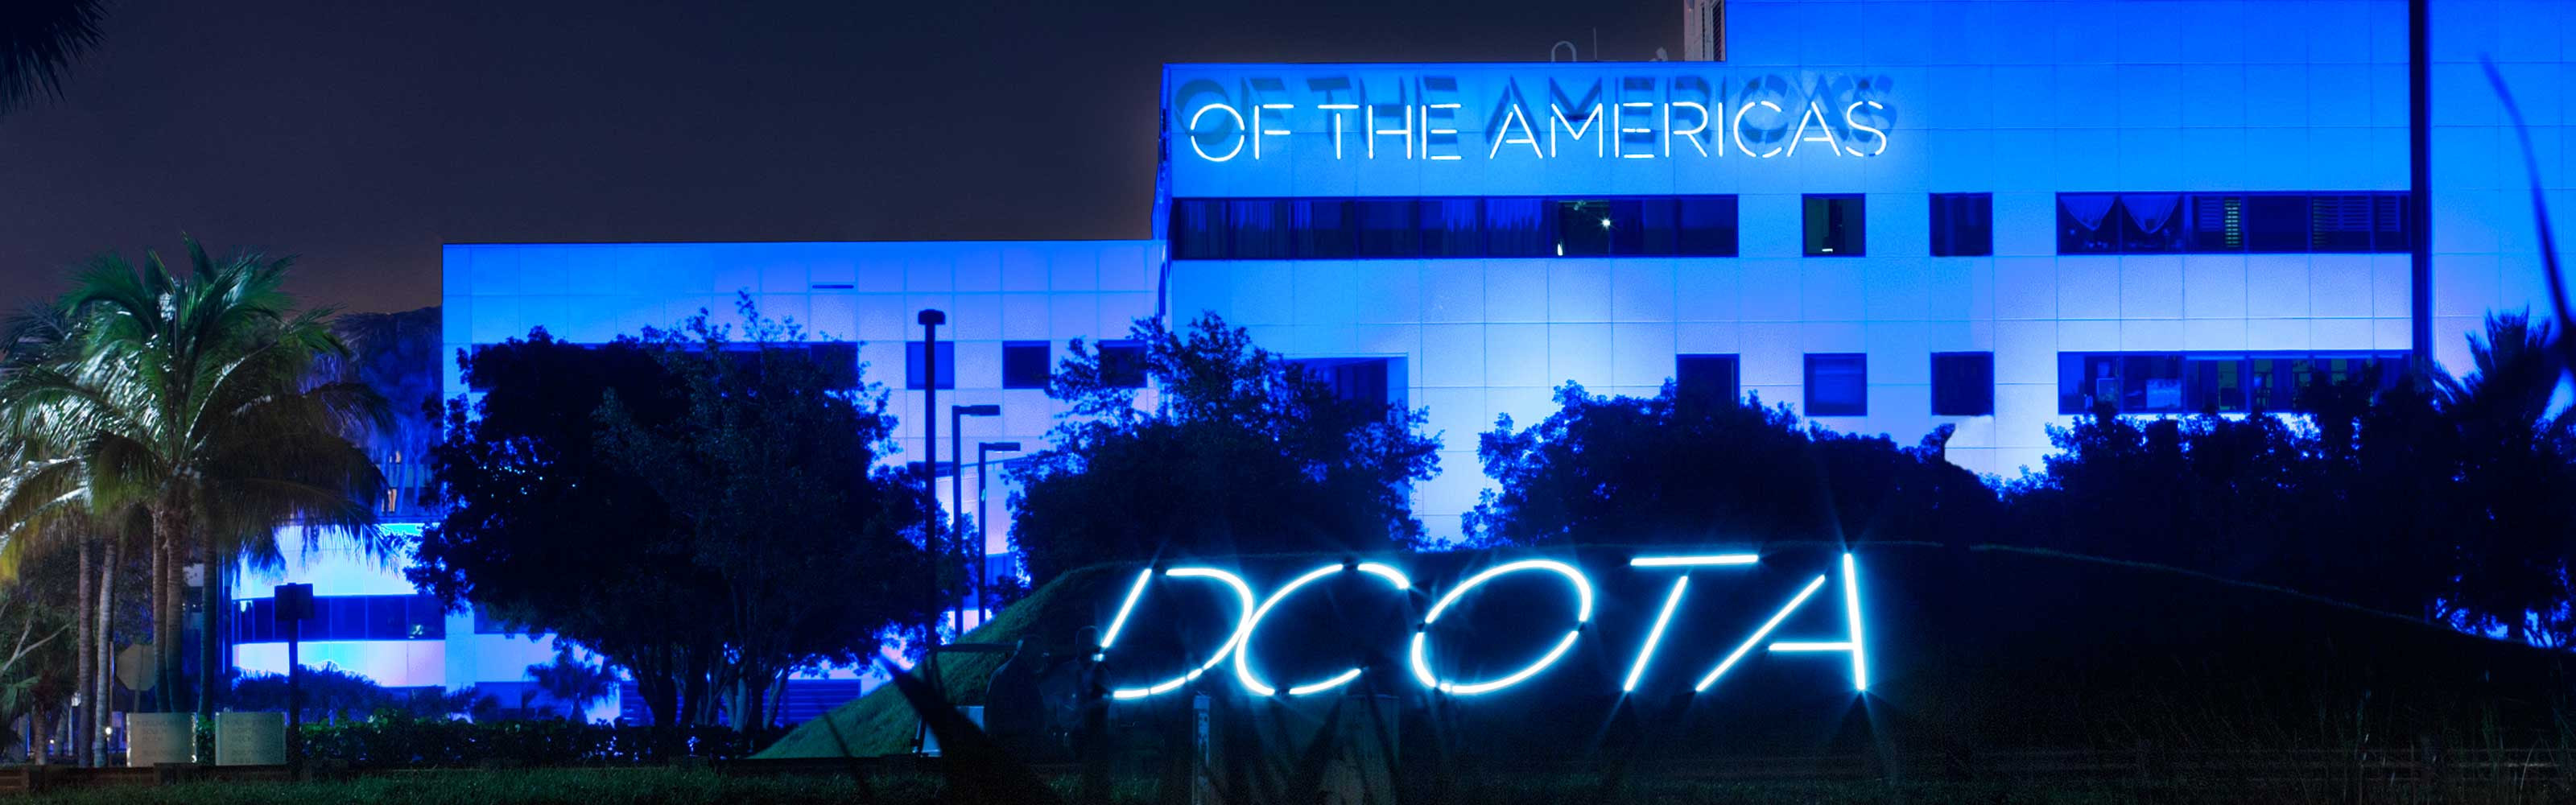 Dcota Information Design Center Of The Americas